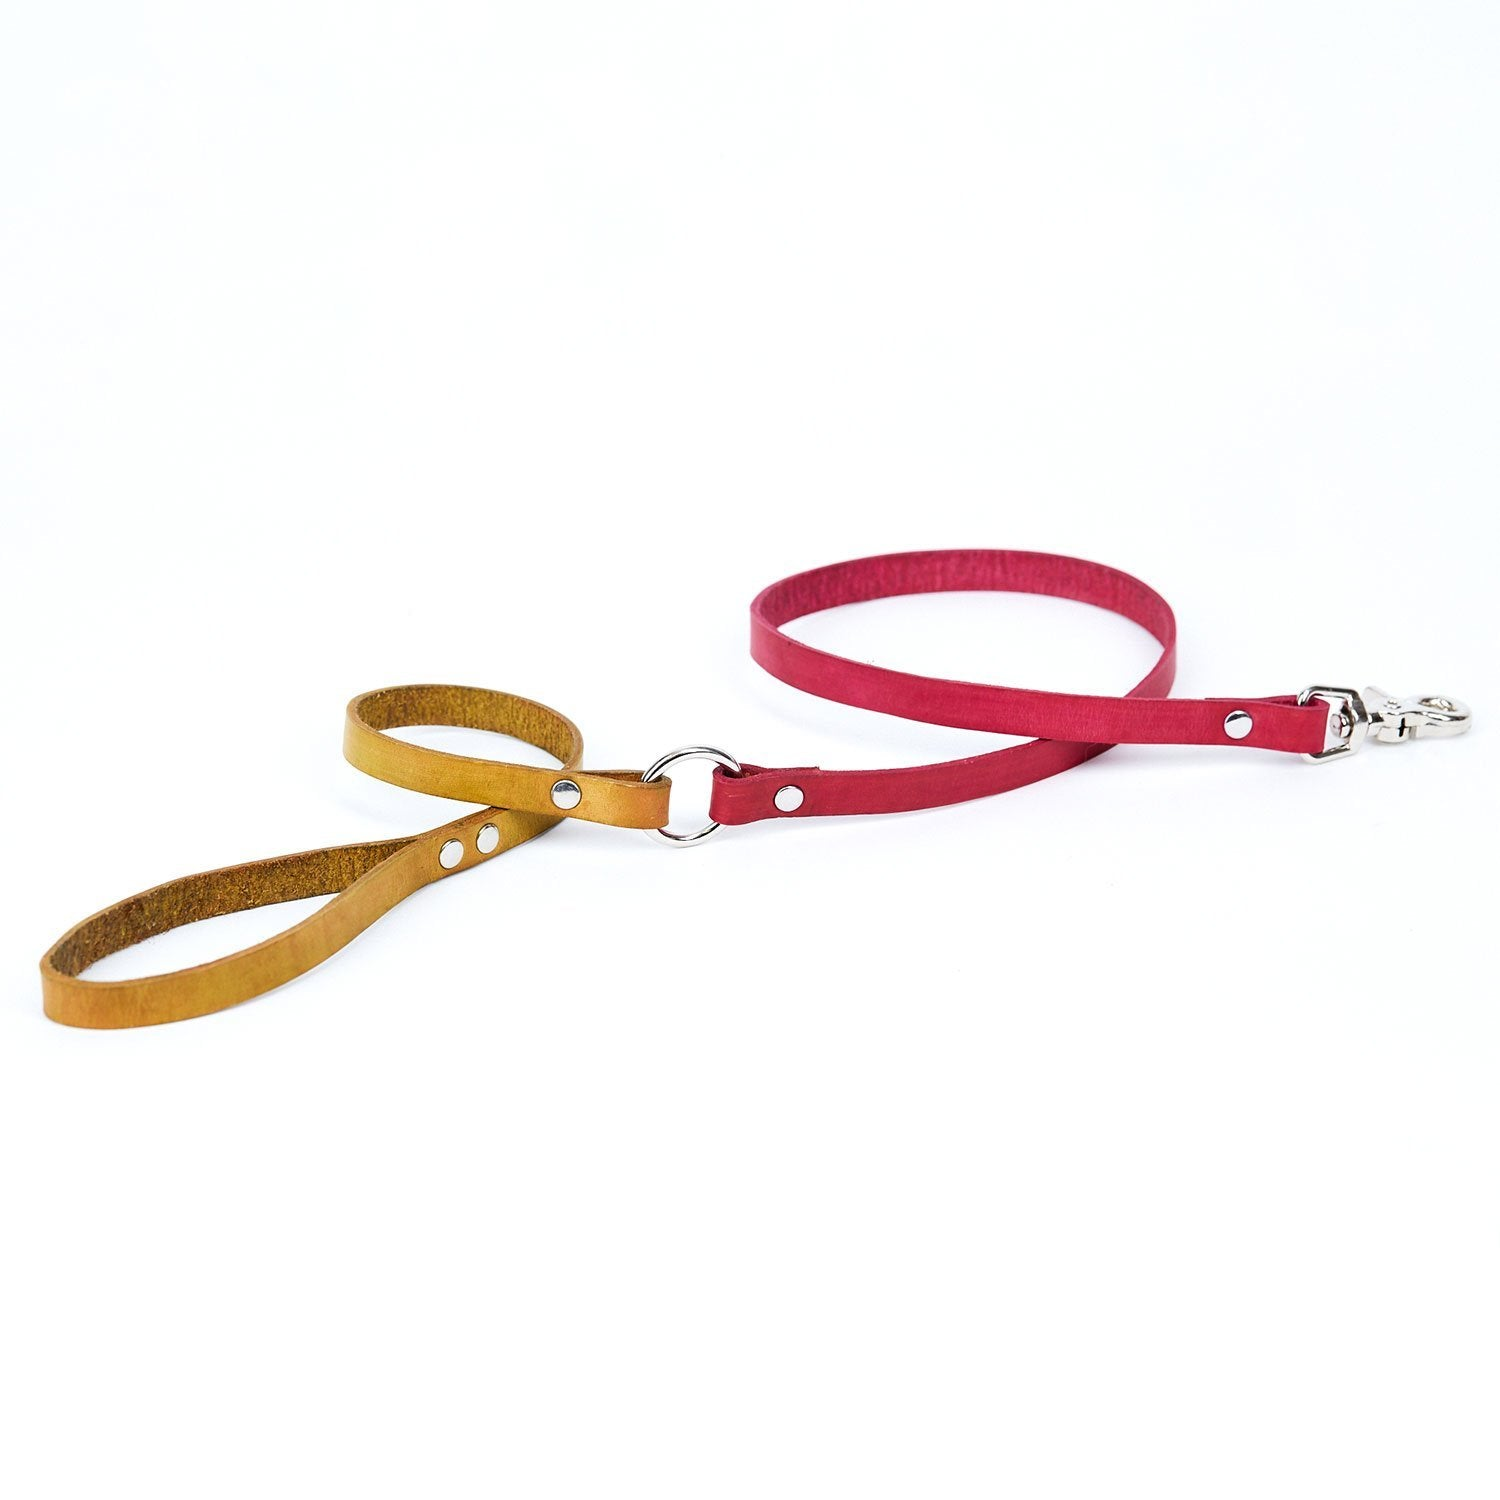 Medium Leather Dog Leash - Available in More Colors